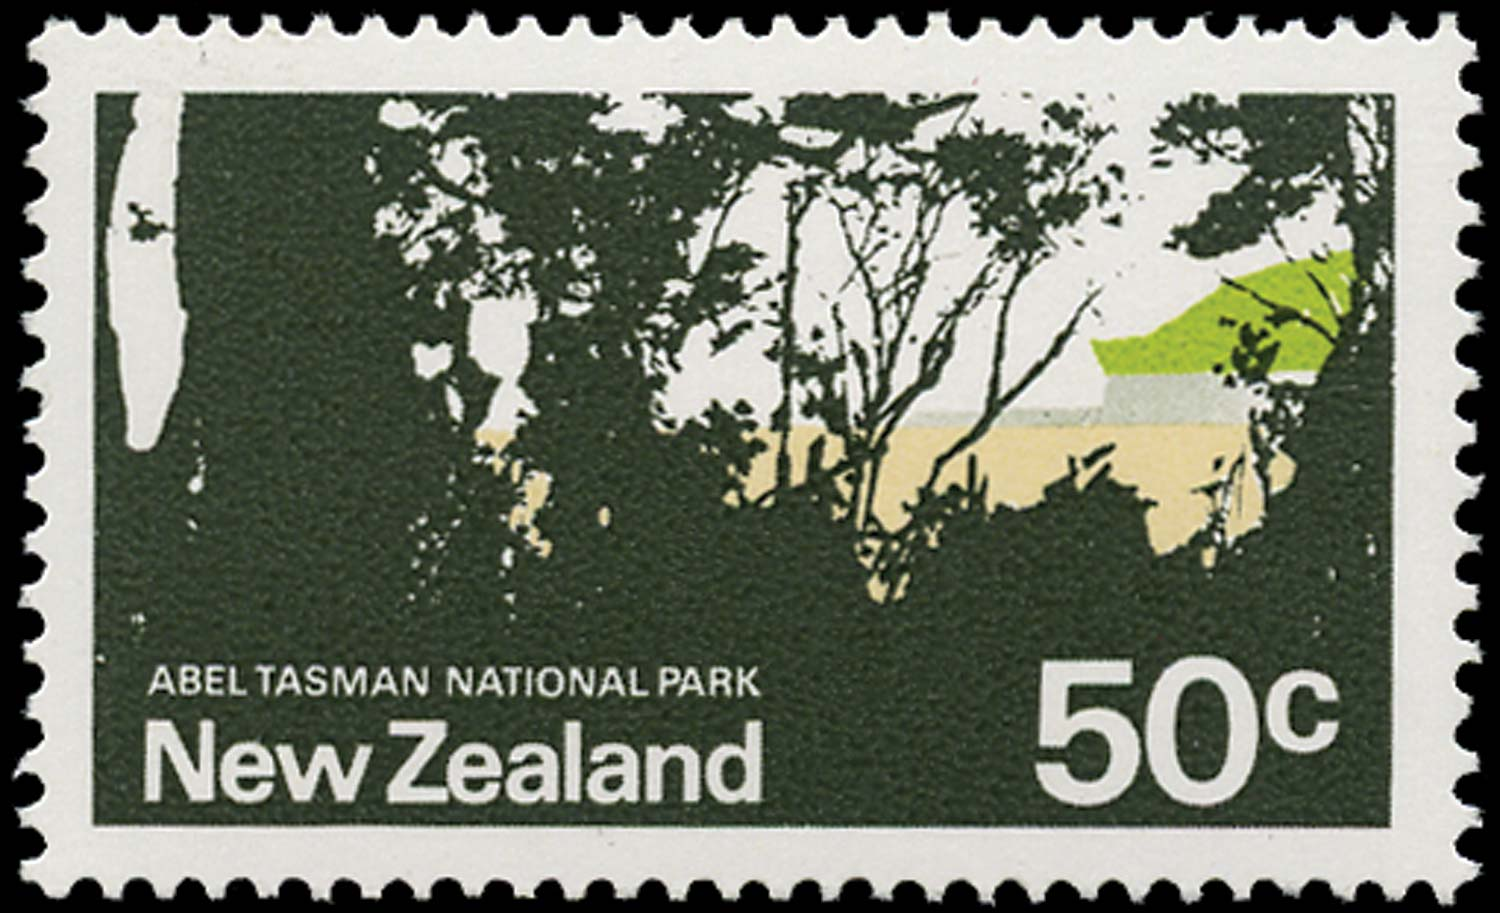 NEW ZEALAND 1970  SG932c Mint 50c dark green omitted